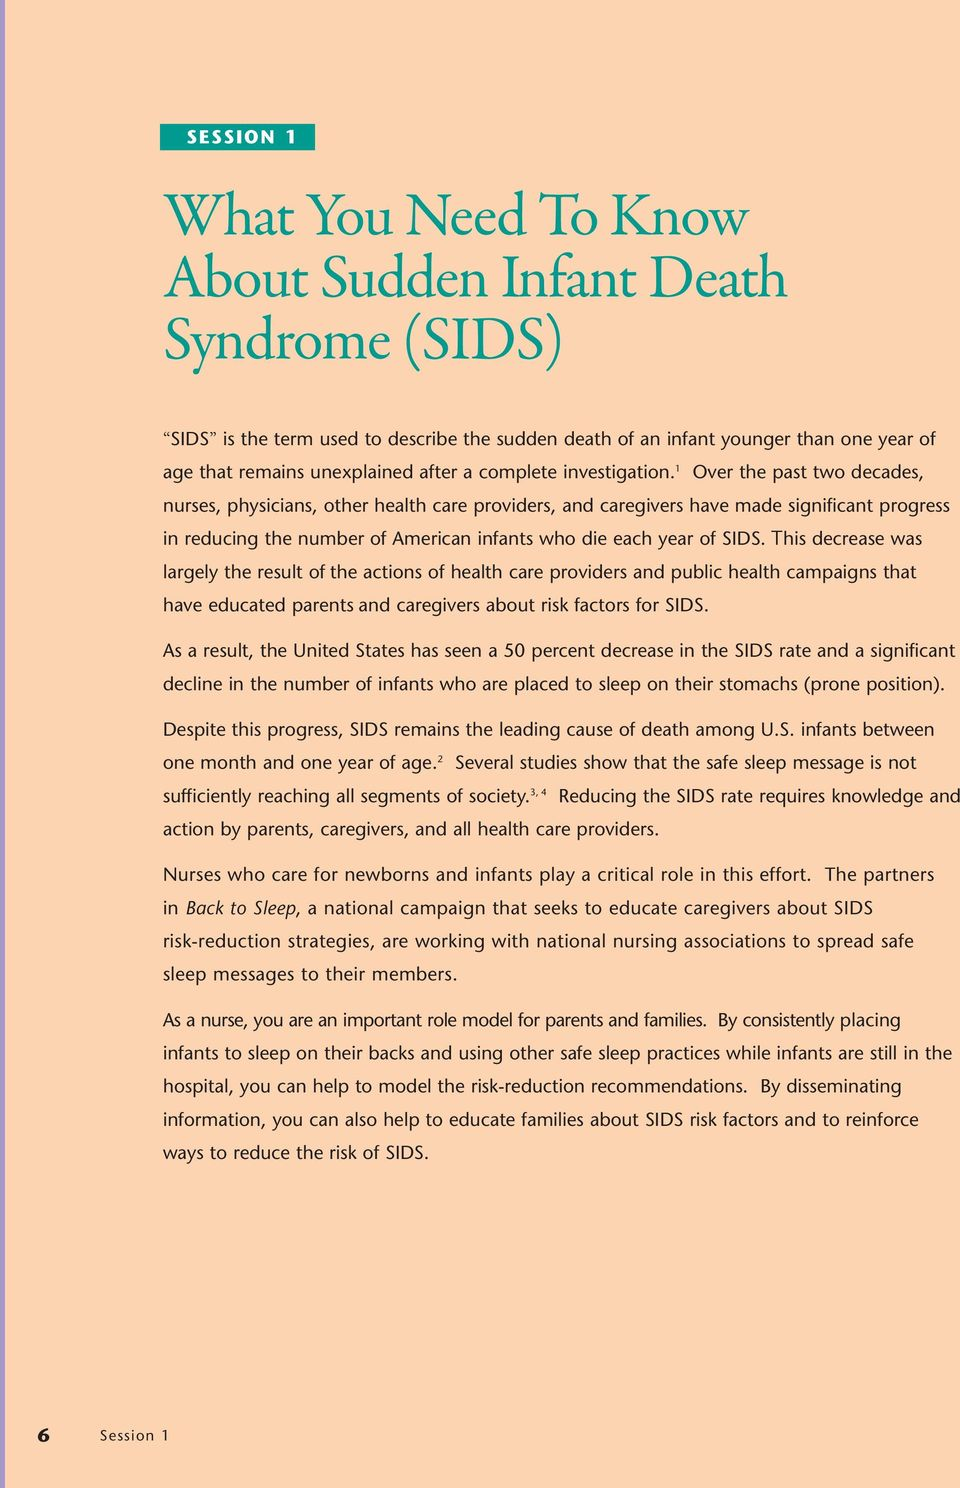 1 Over the past two decades, nurses, physicians, other health care providers, and caregivers have made significant progress in reducing the number of American infants who die each year of SIDS.